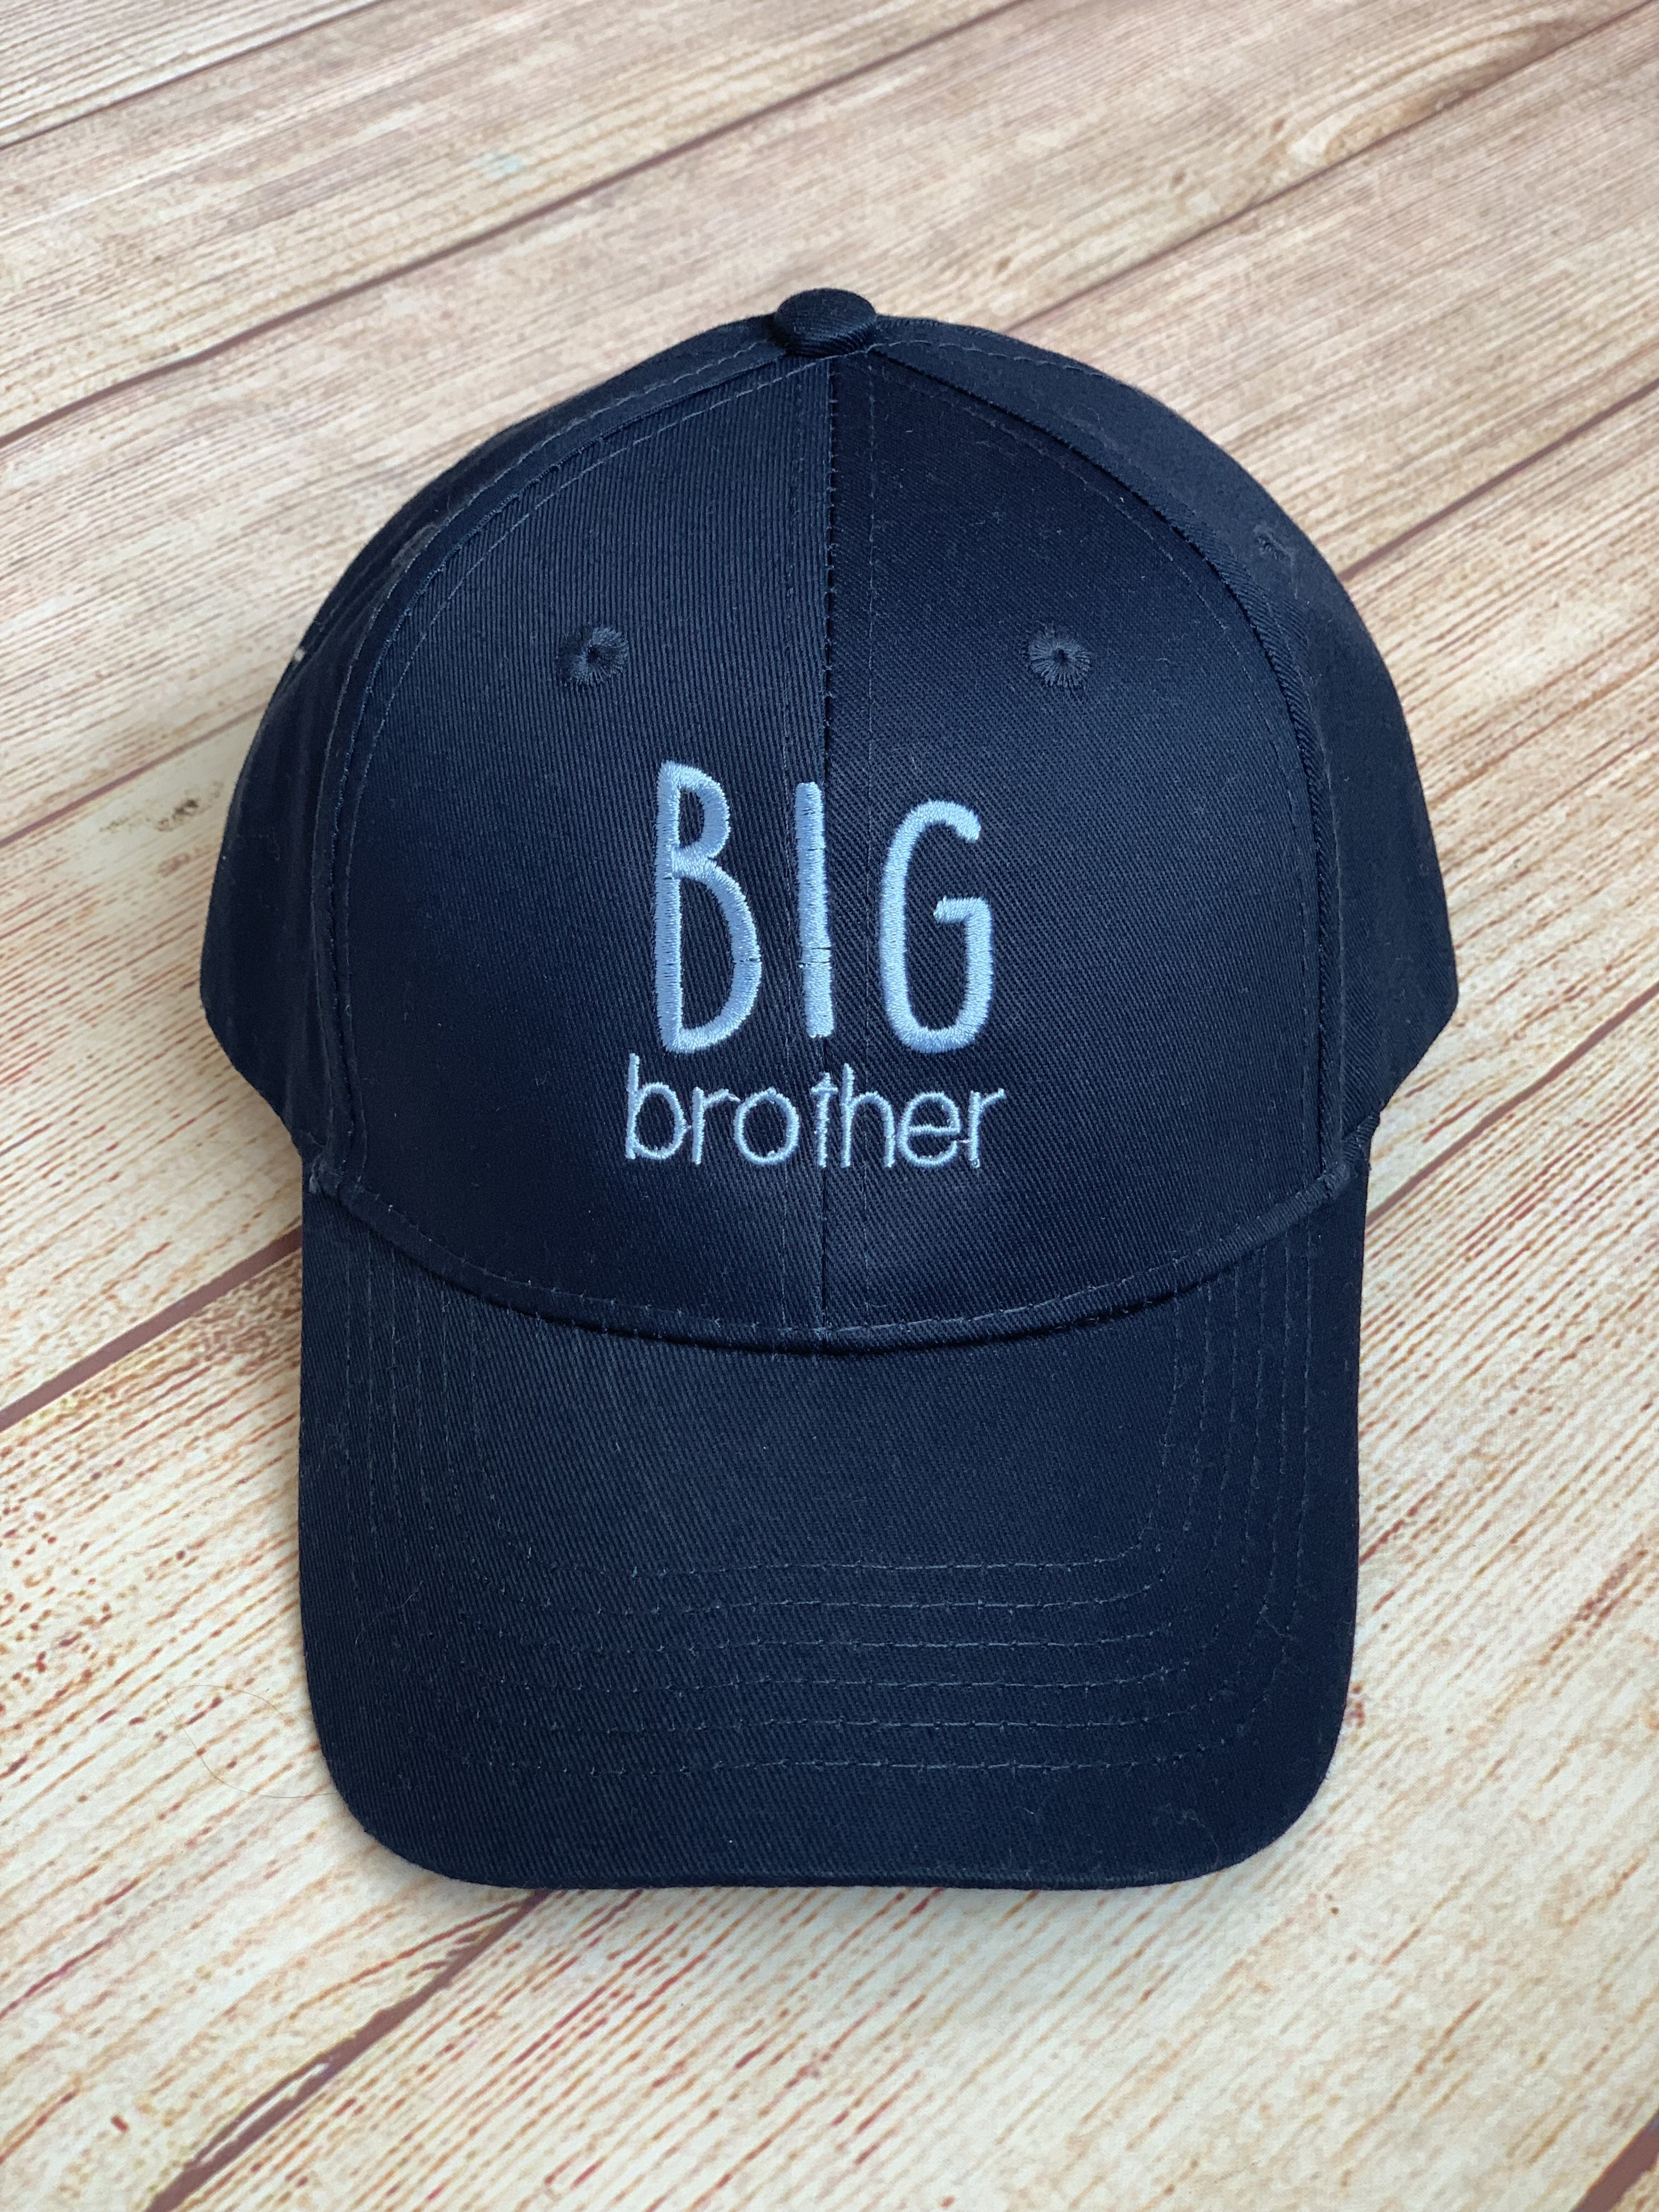 Bring a little gift for the big brother. It's adjustable - no size needed!